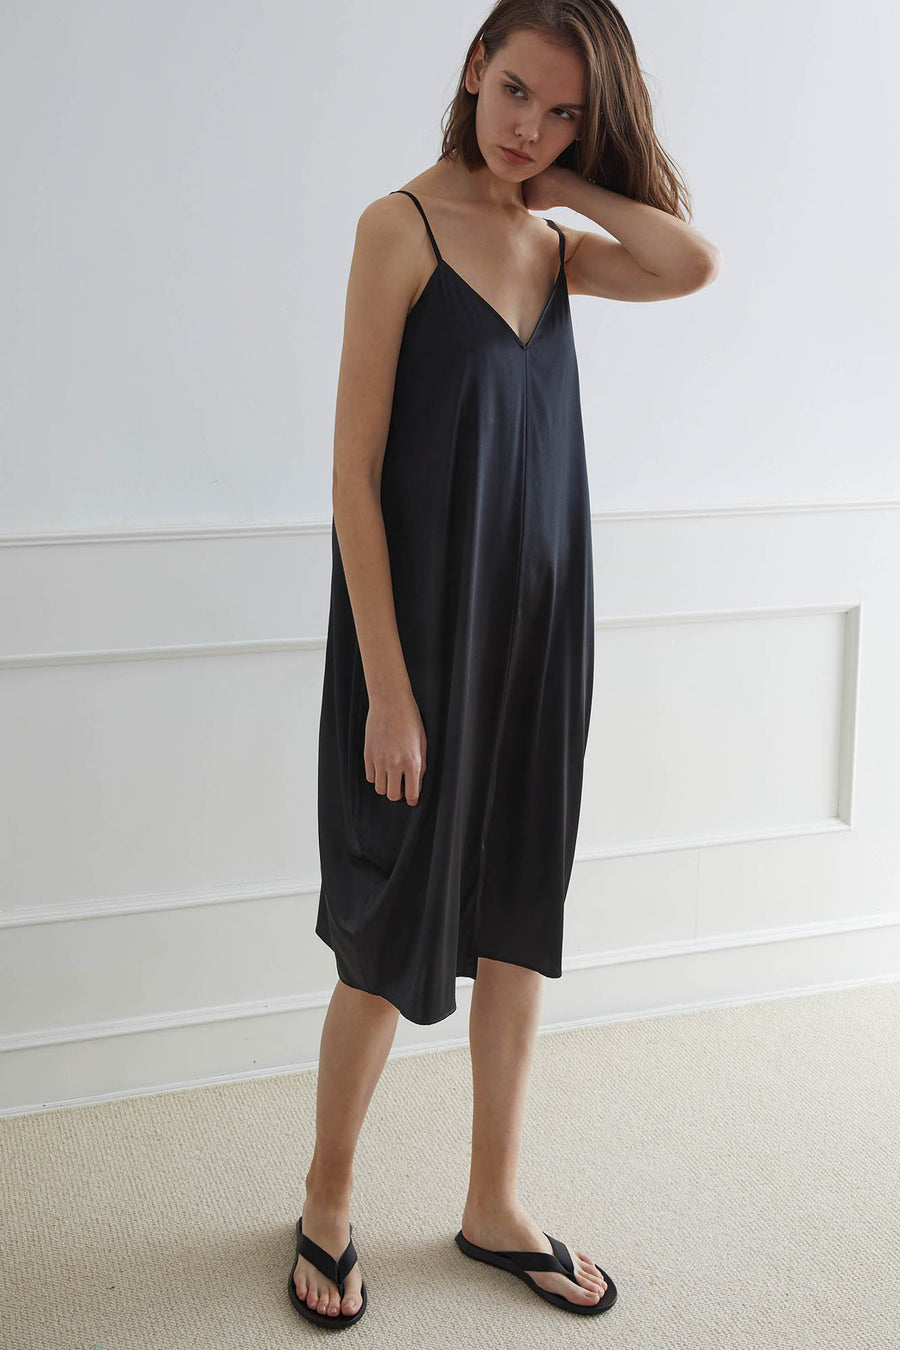 SANDNES Camisole Gown with Lantern Base